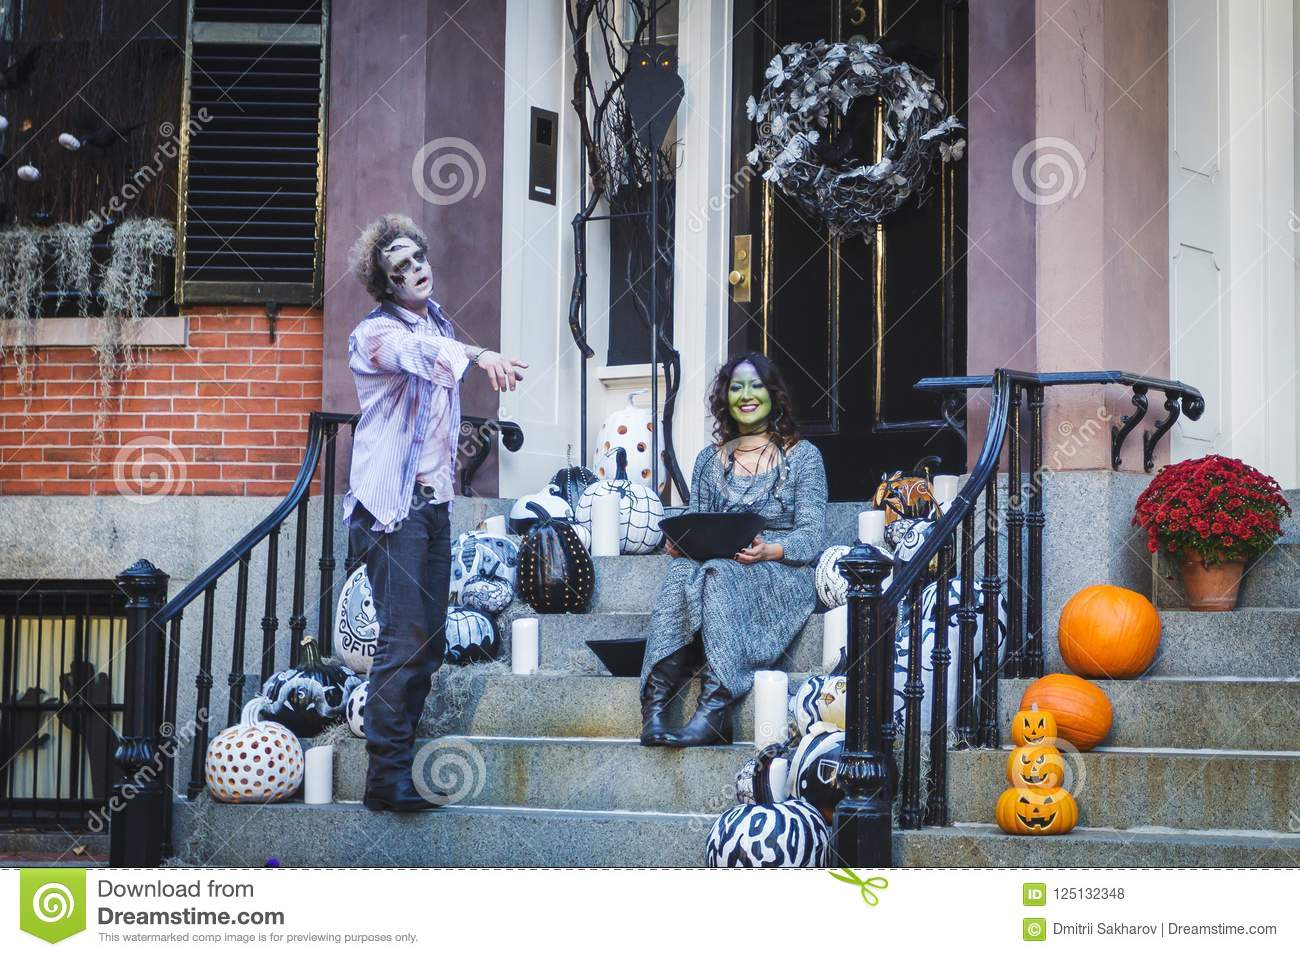 Adult couple dressed like zombie and a witch posing near their house on Halloween